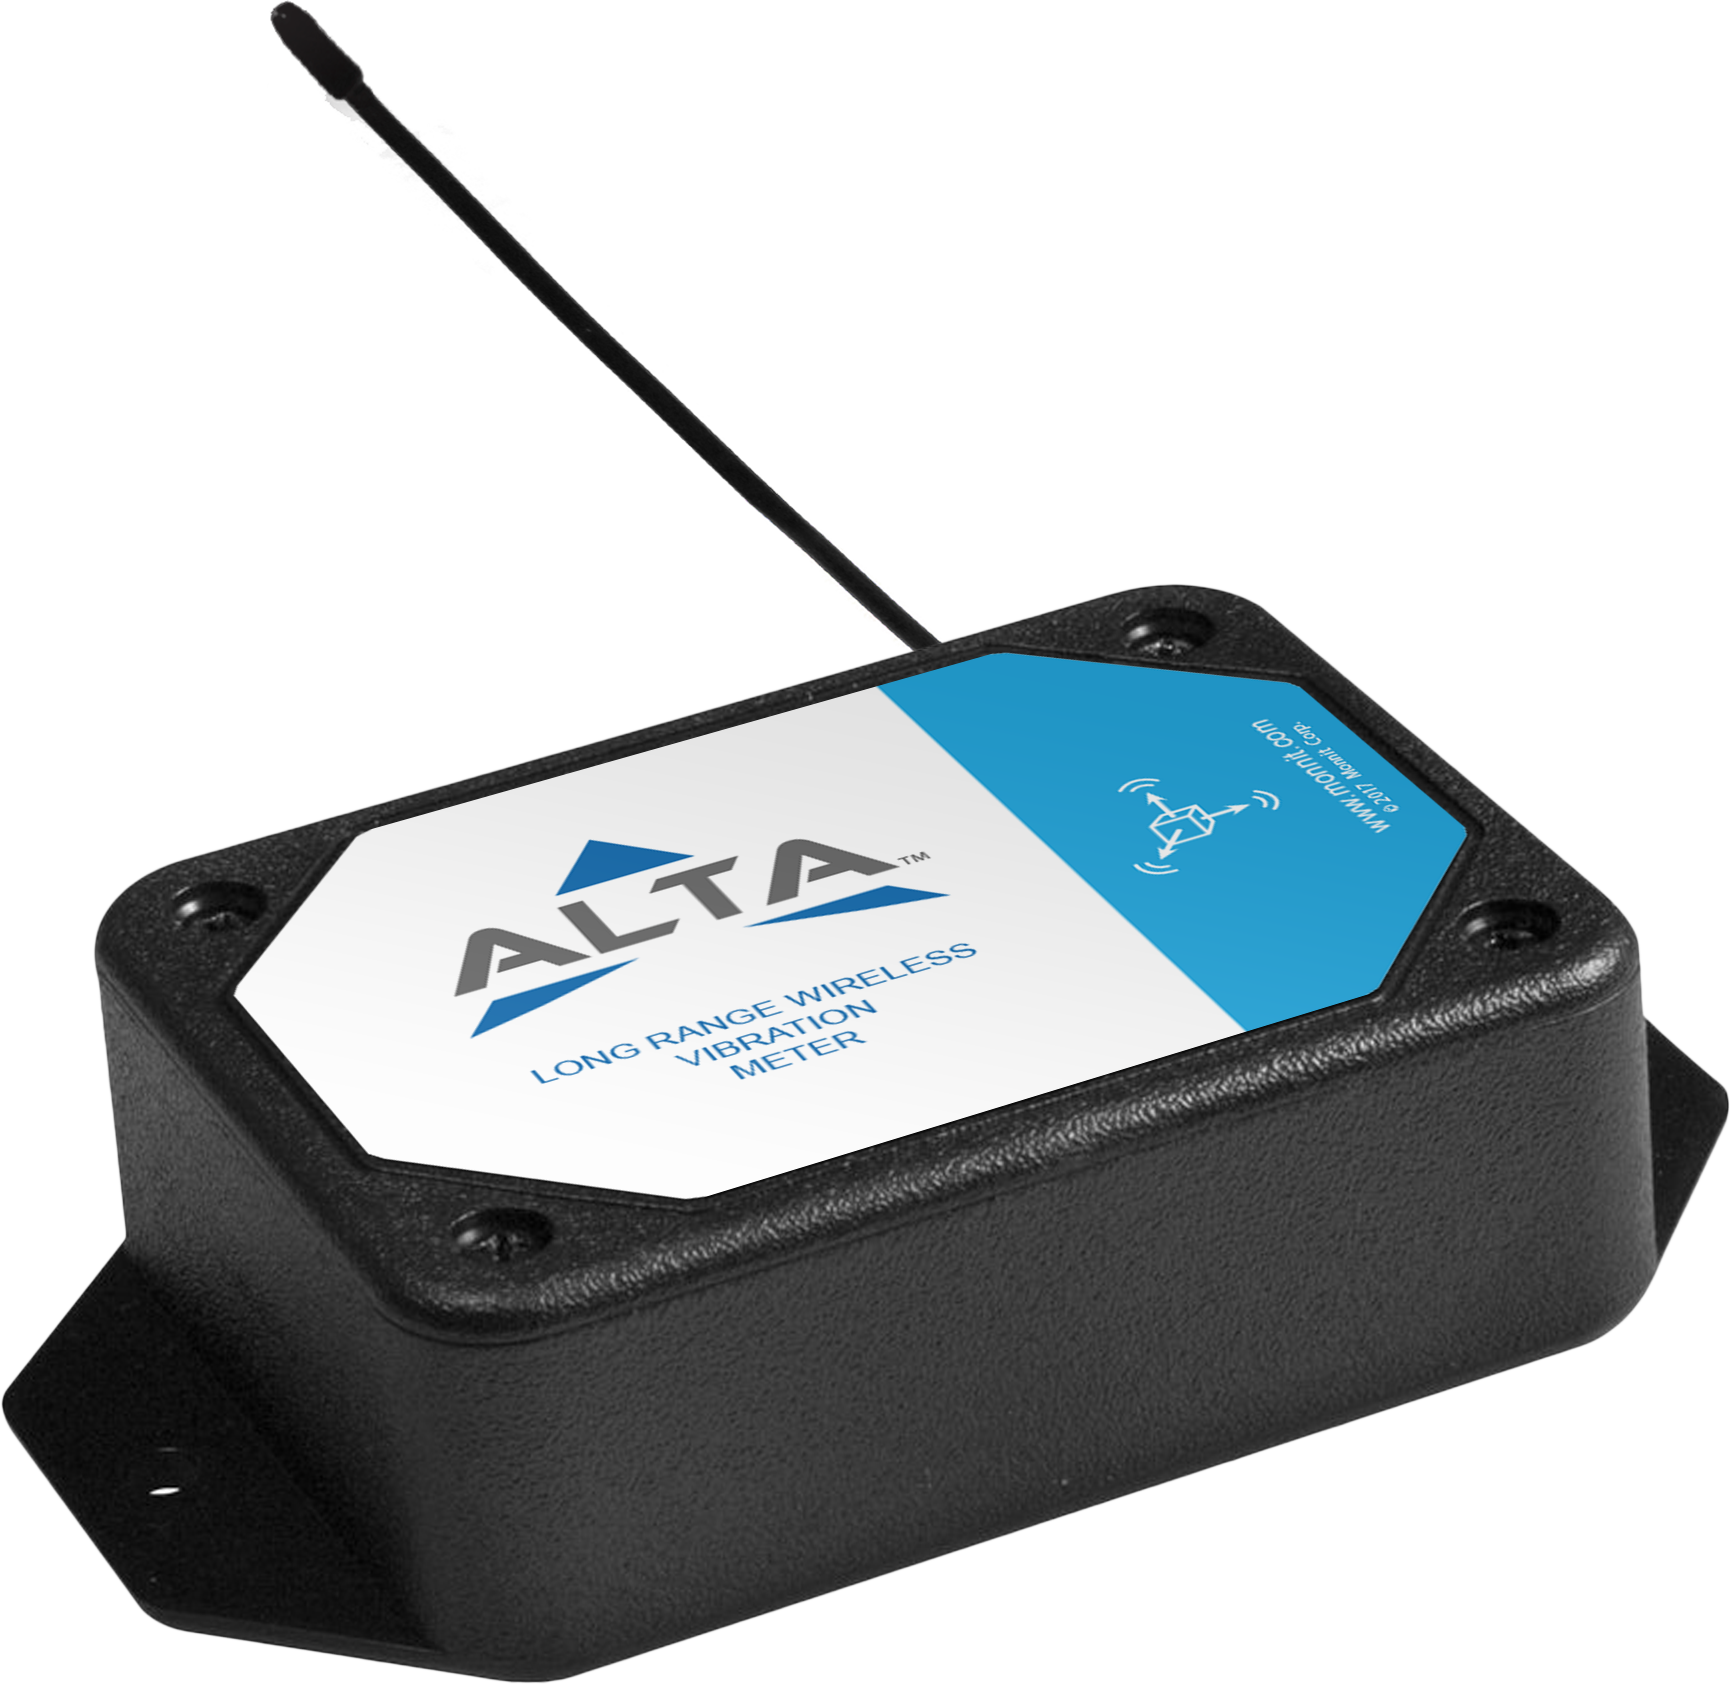 Wireless Accelerometer -Vibration Meters